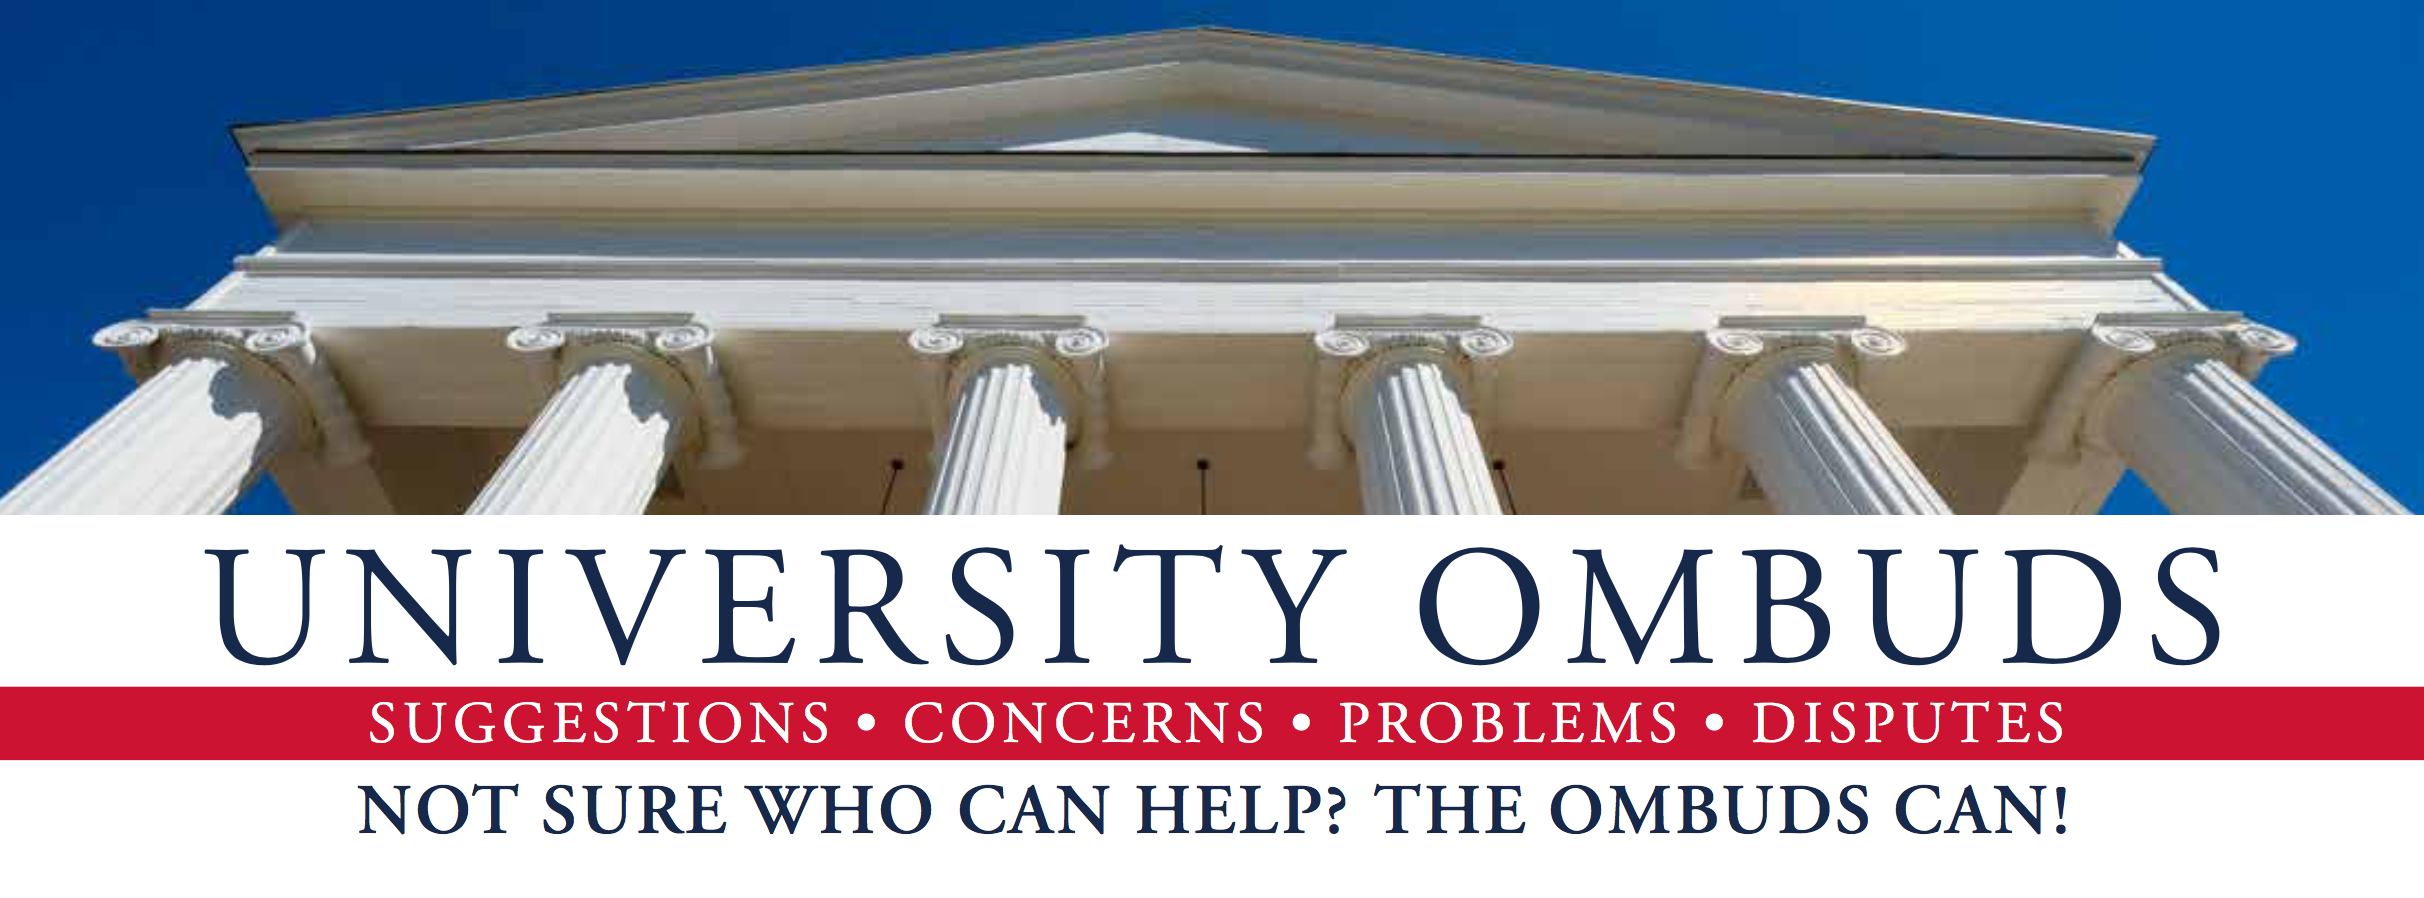 Not sure who can help with suggestions, concerns, problems, or disputes? The Ombuds can!